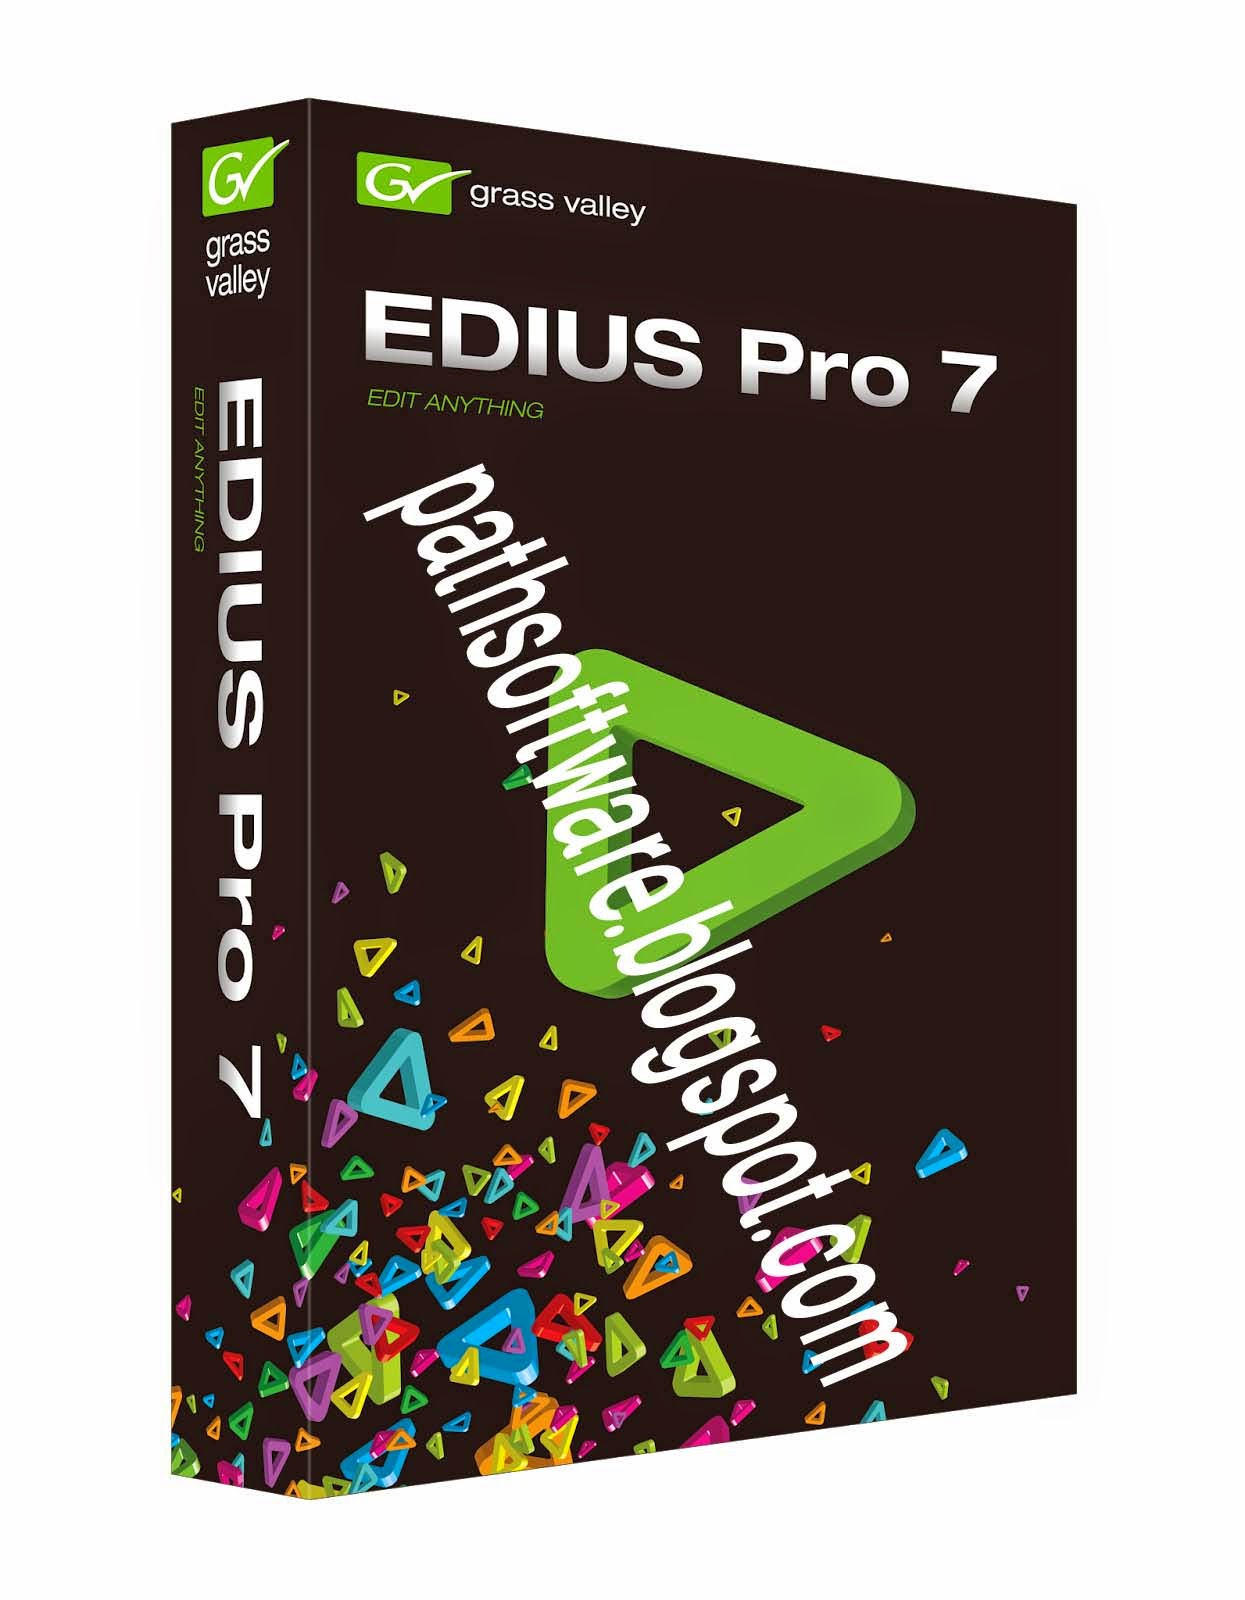 EDIUS Pro 7.4.1.28 x64 Download Full With Patch